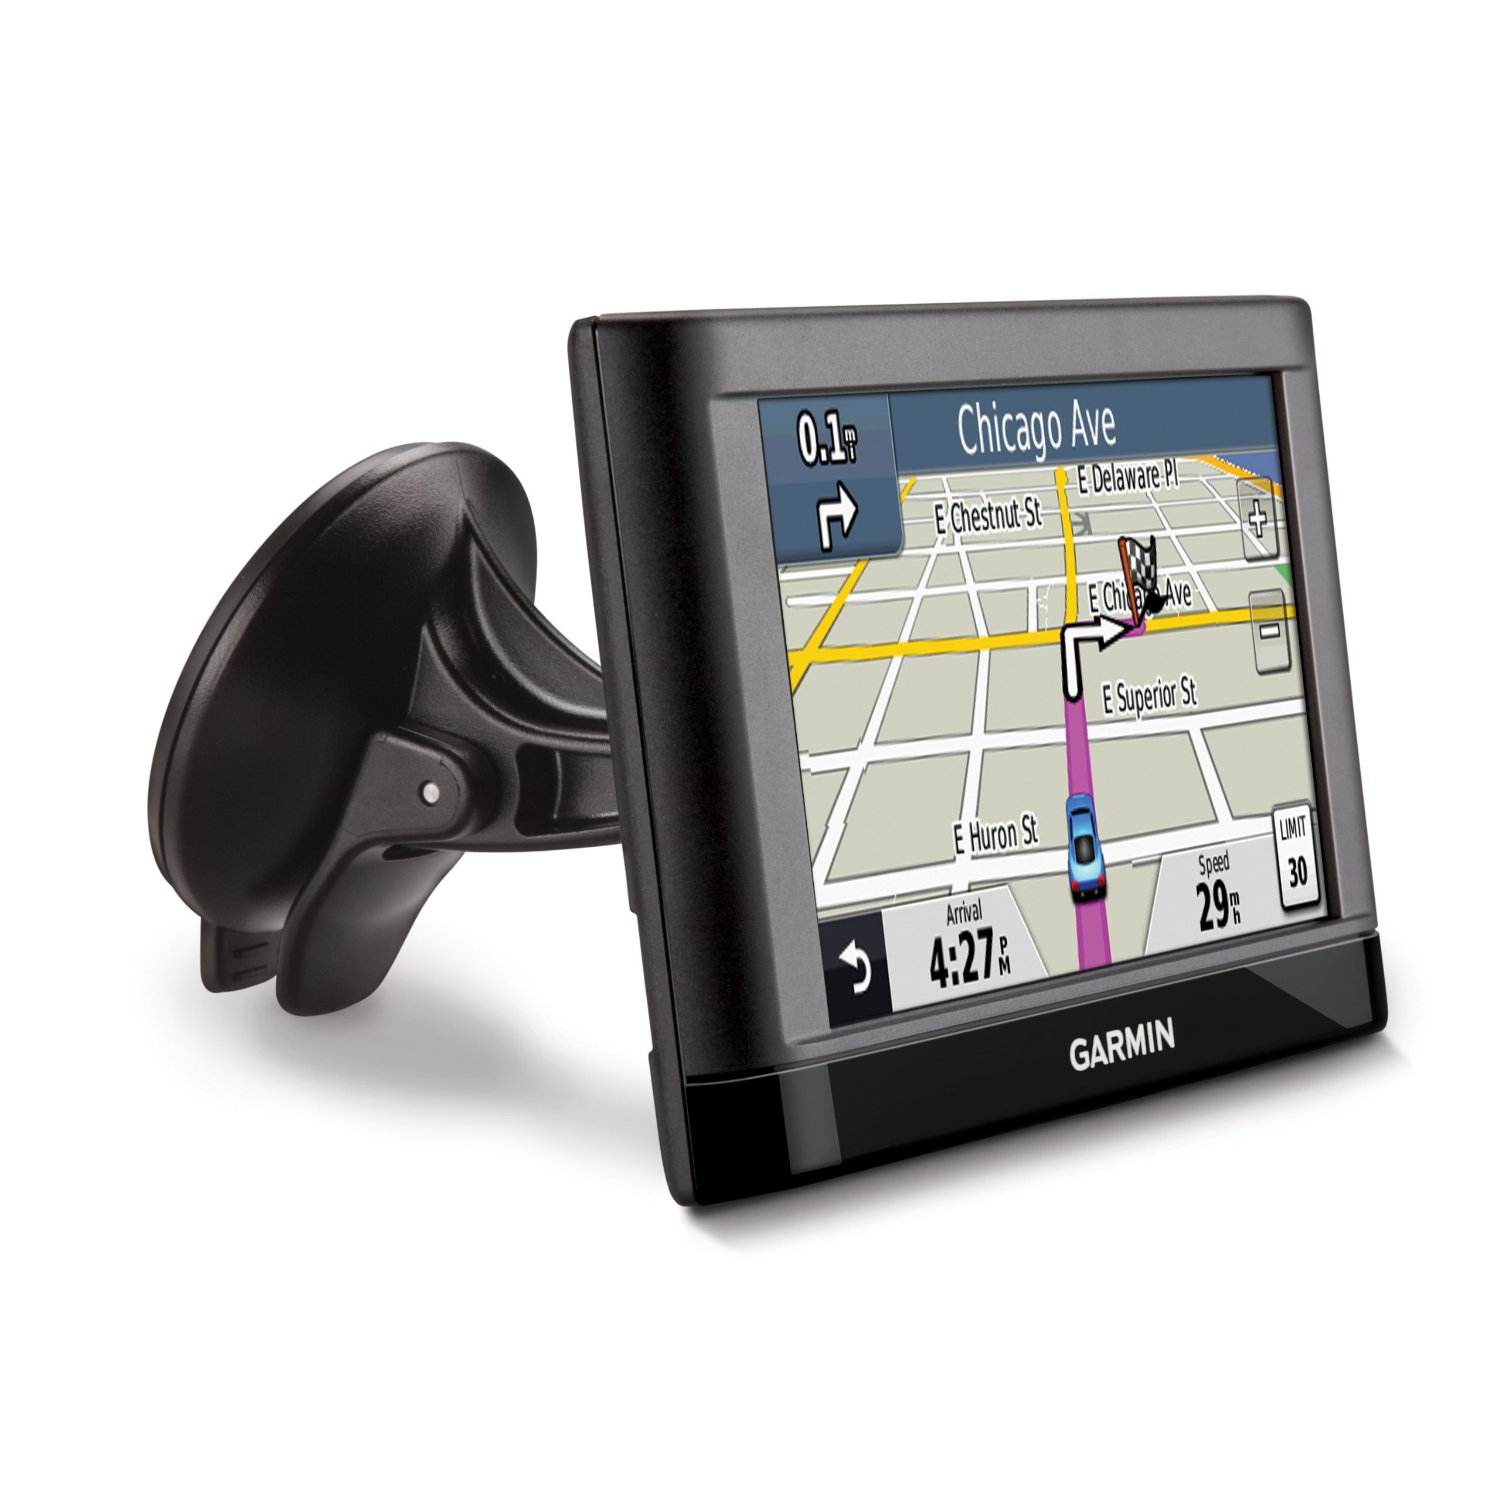 garmin nuvi 55lm 5 touchscreen car sat navigation gps w. Black Bedroom Furniture Sets. Home Design Ideas